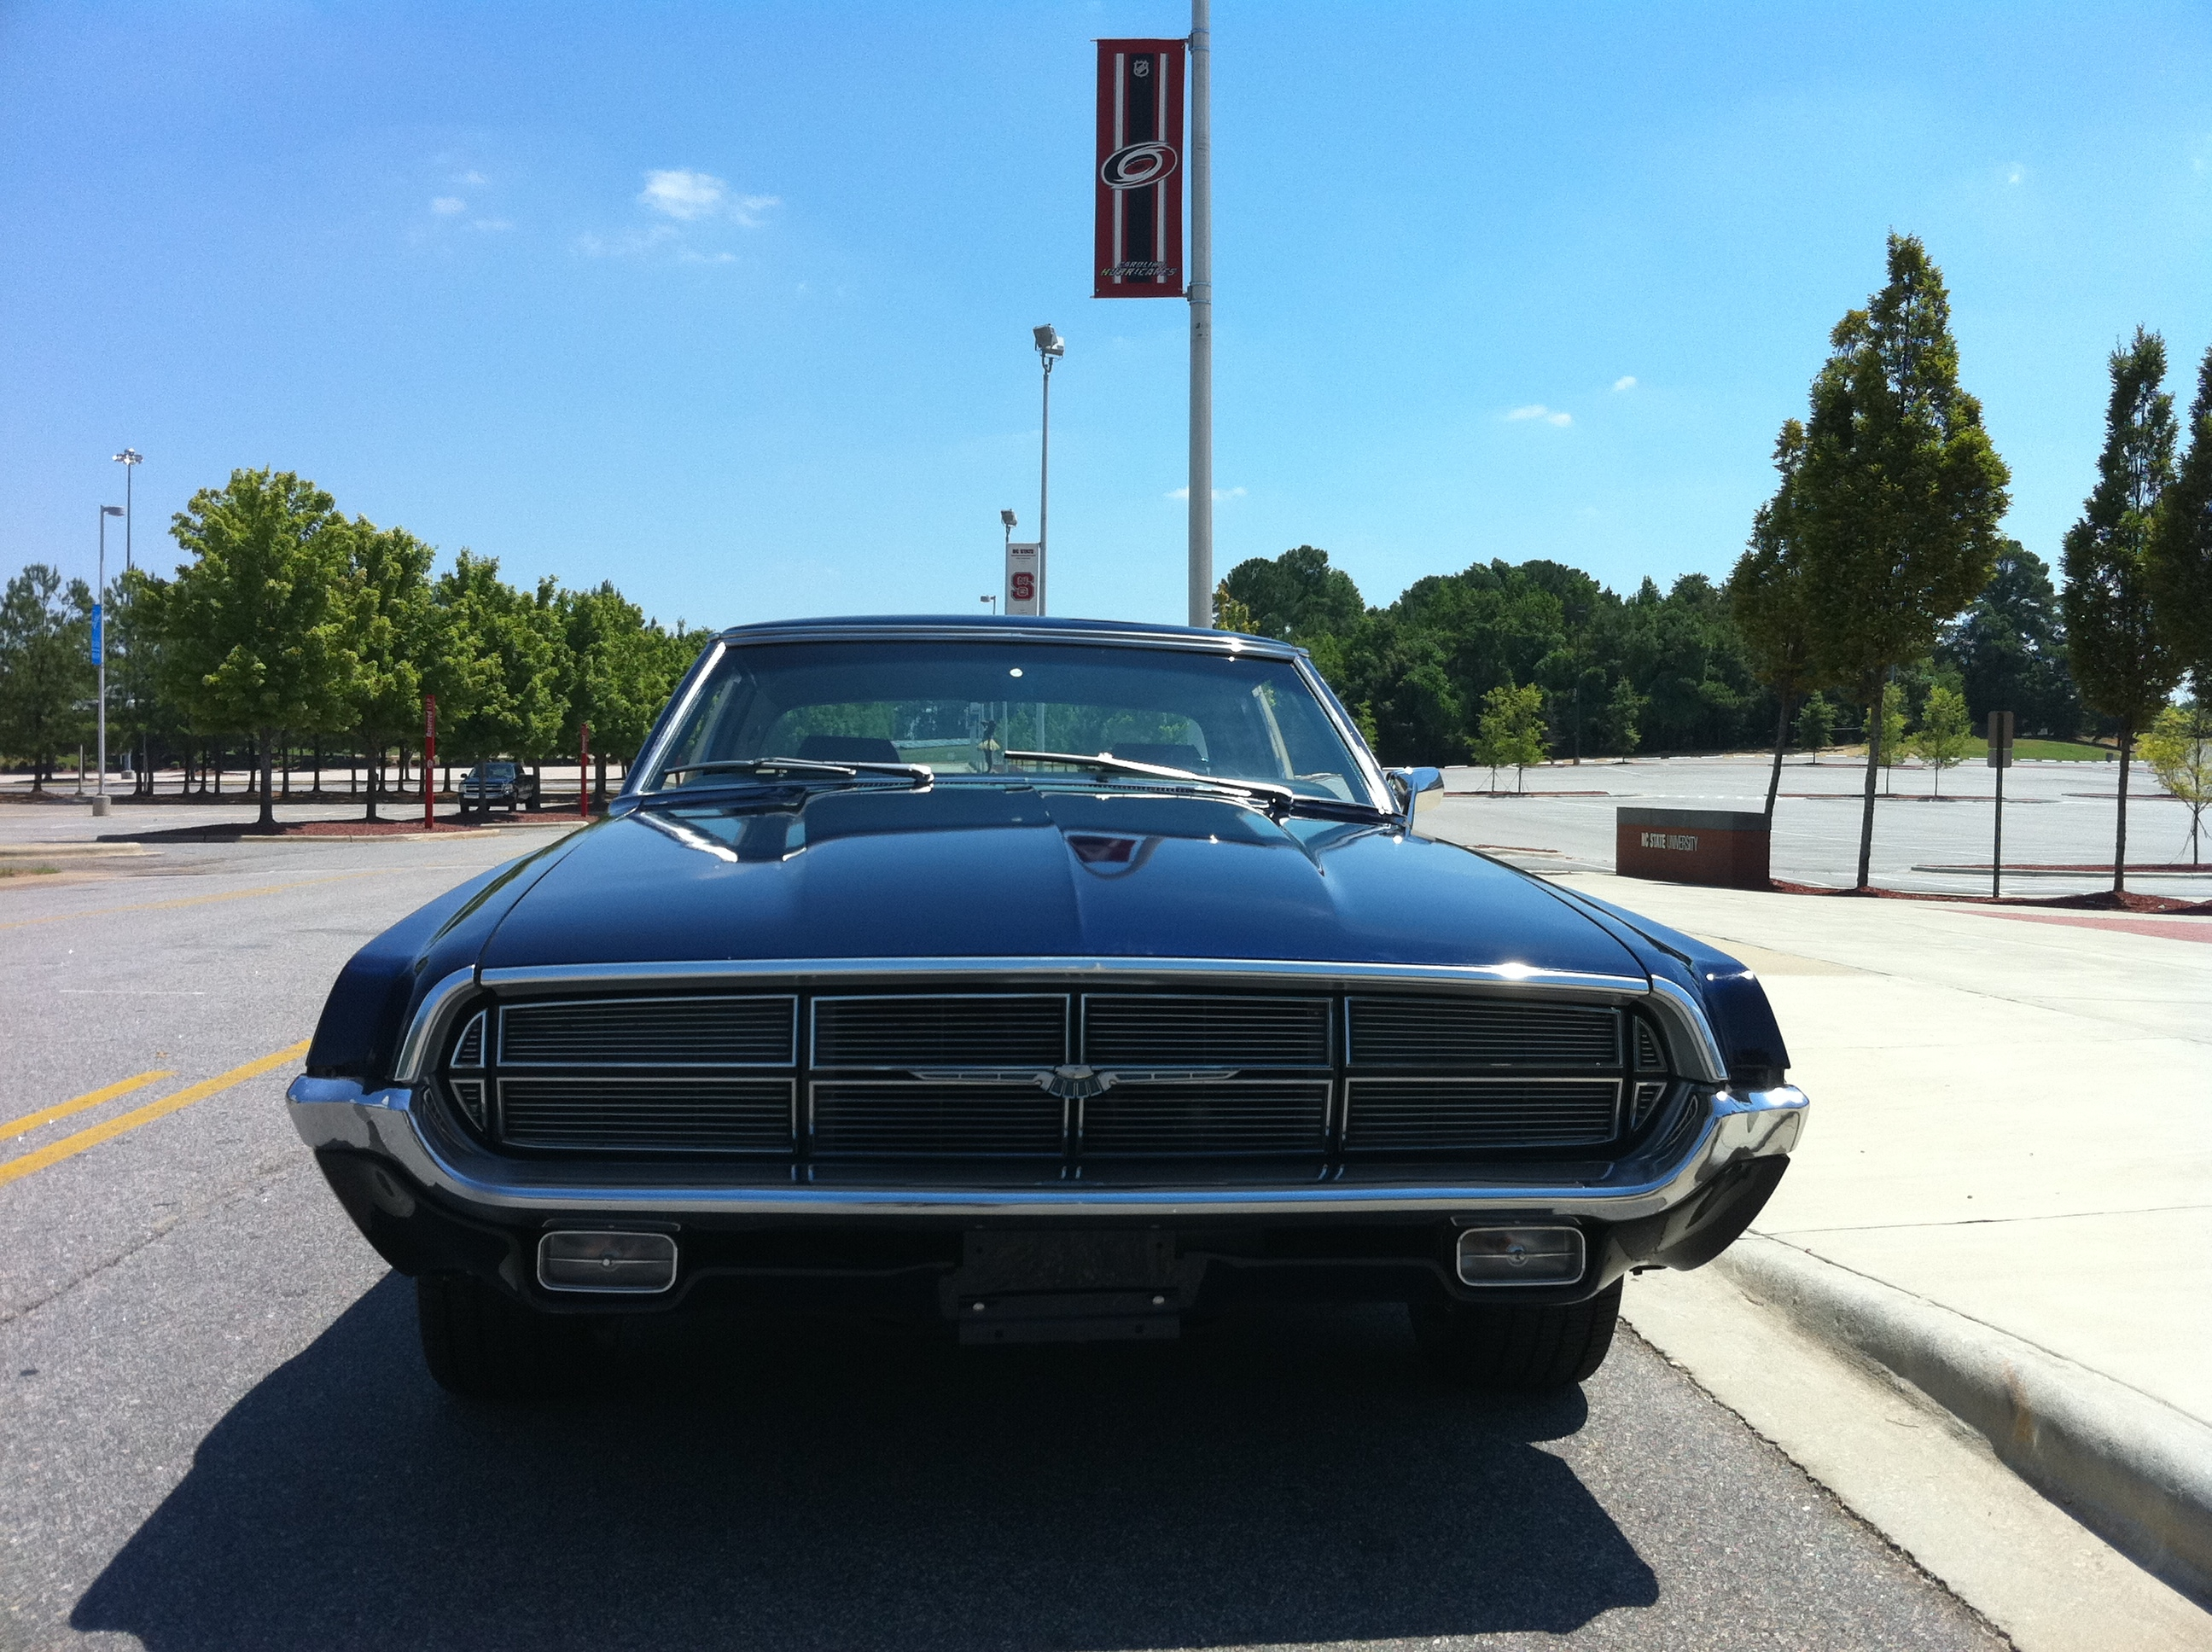 Ford thunderbird 1967 picture 2 of 2 front angle image - 1969_ford_thunderbird_front Jpg 2592 1936 1969 Ford Thunderbird Pinterest Ford Thunderbird And Ford